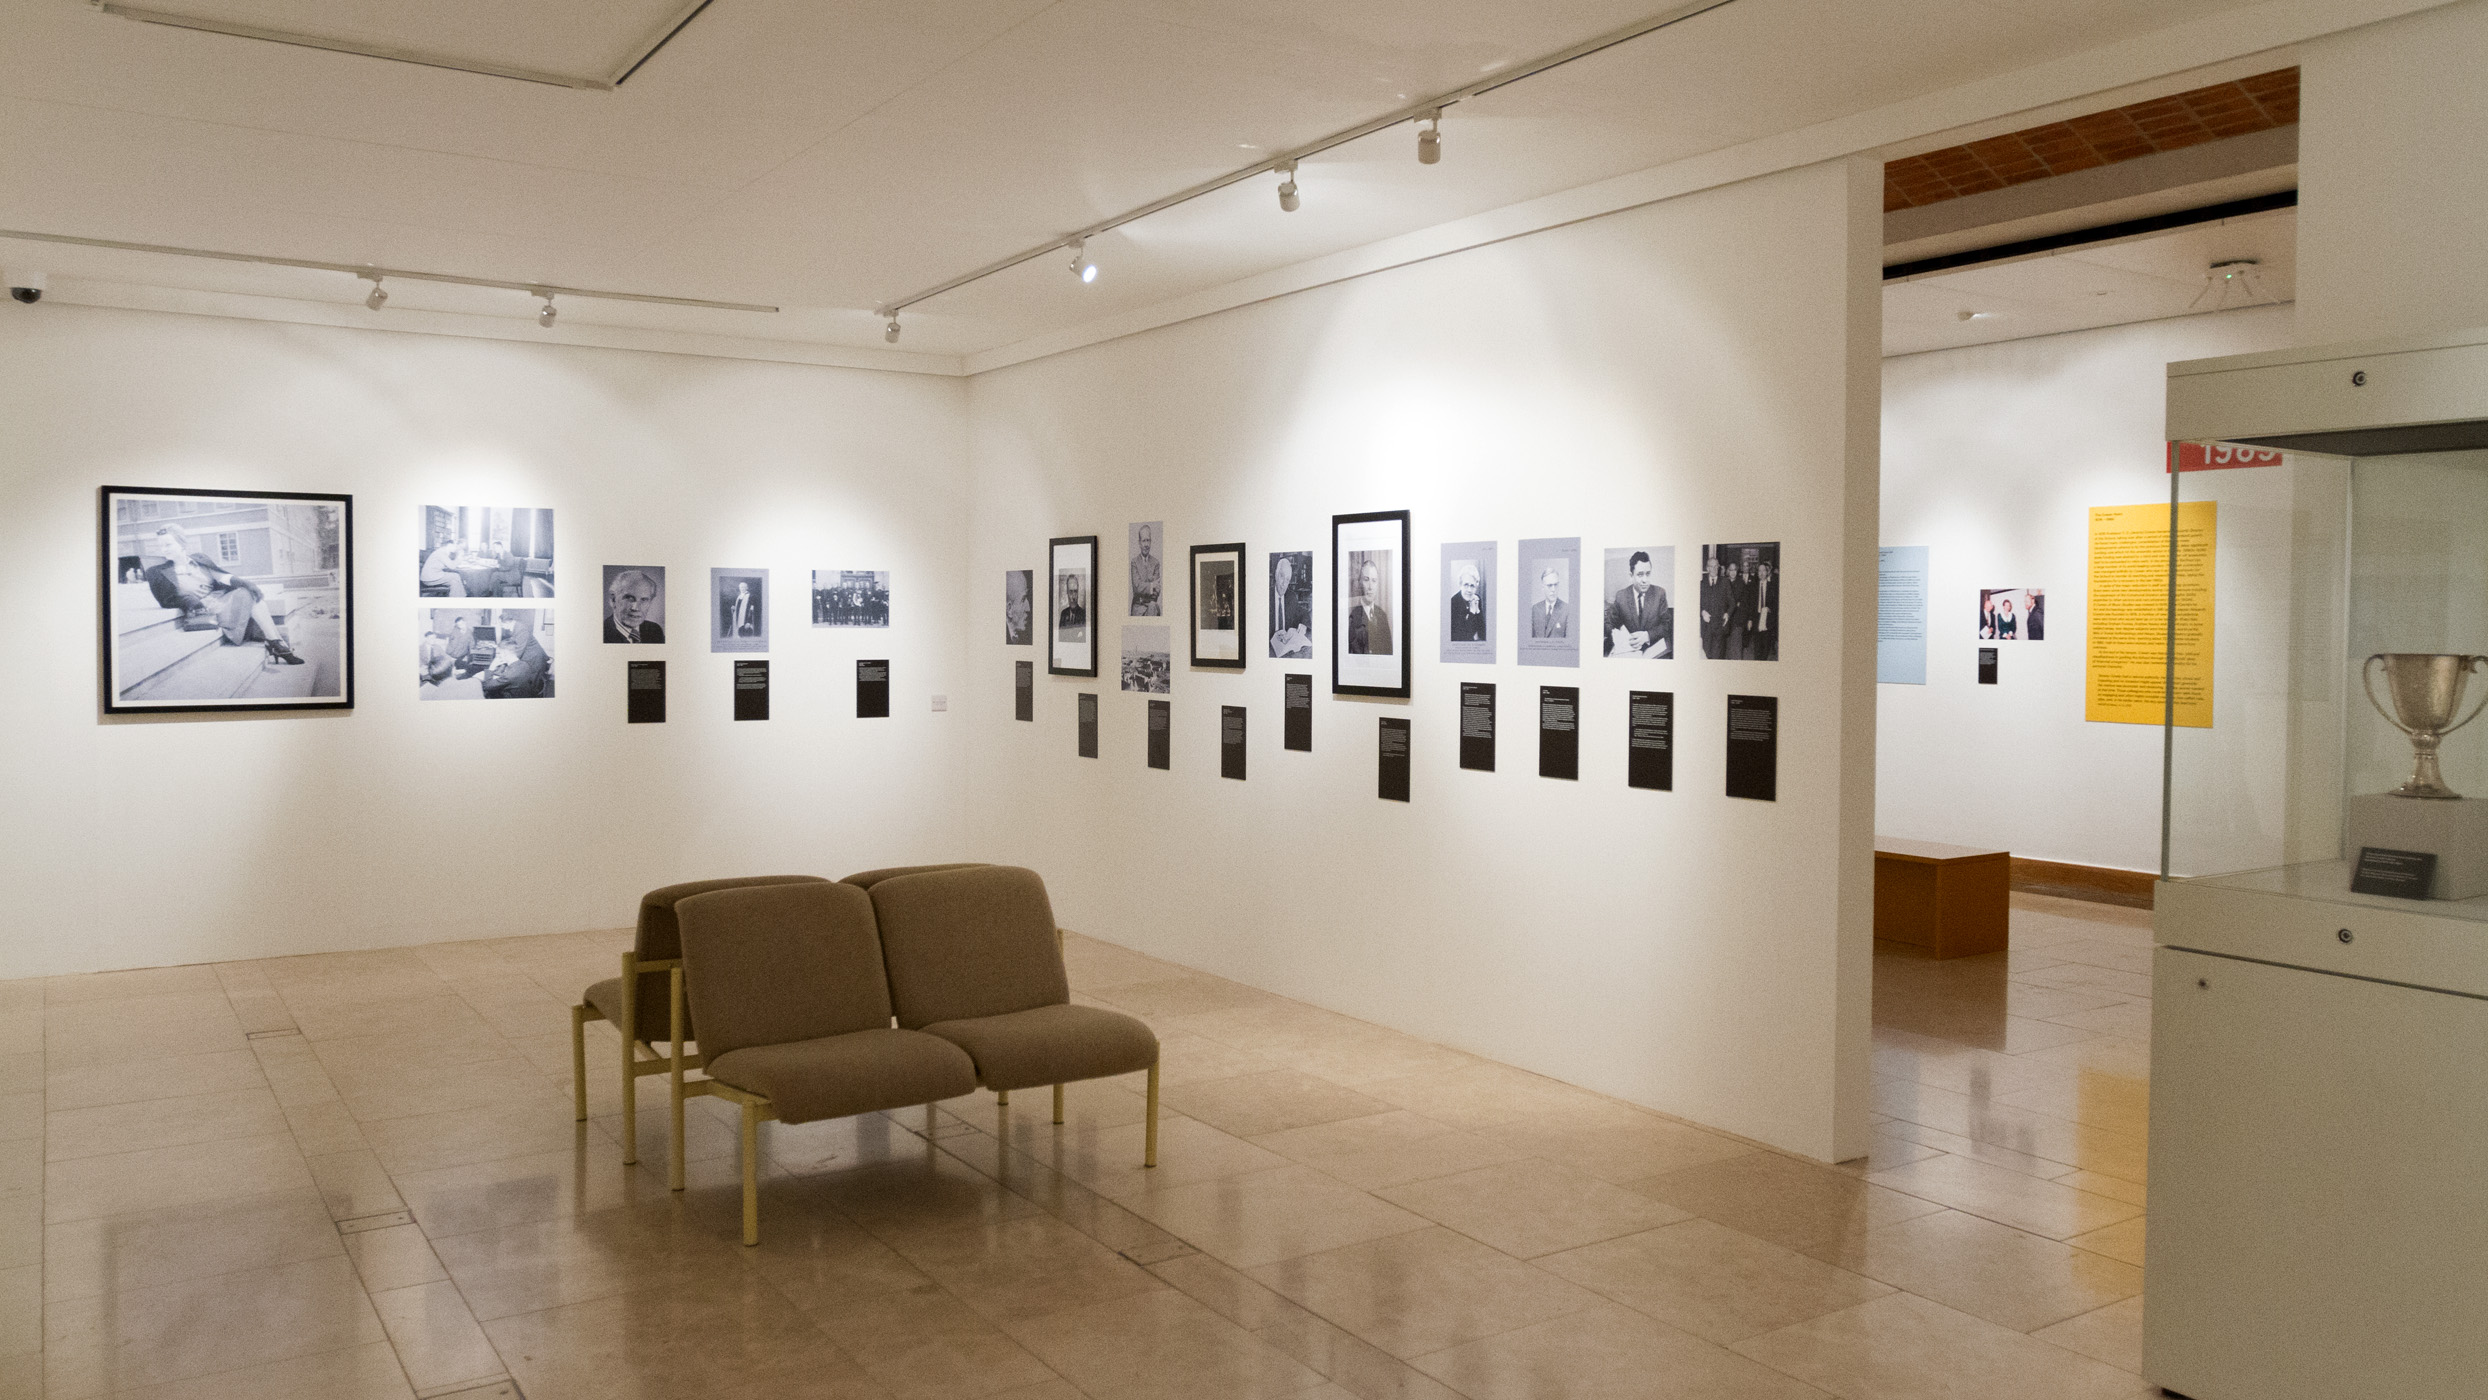 100 years of SOAS University, London exhibition at the Brunei Gallery